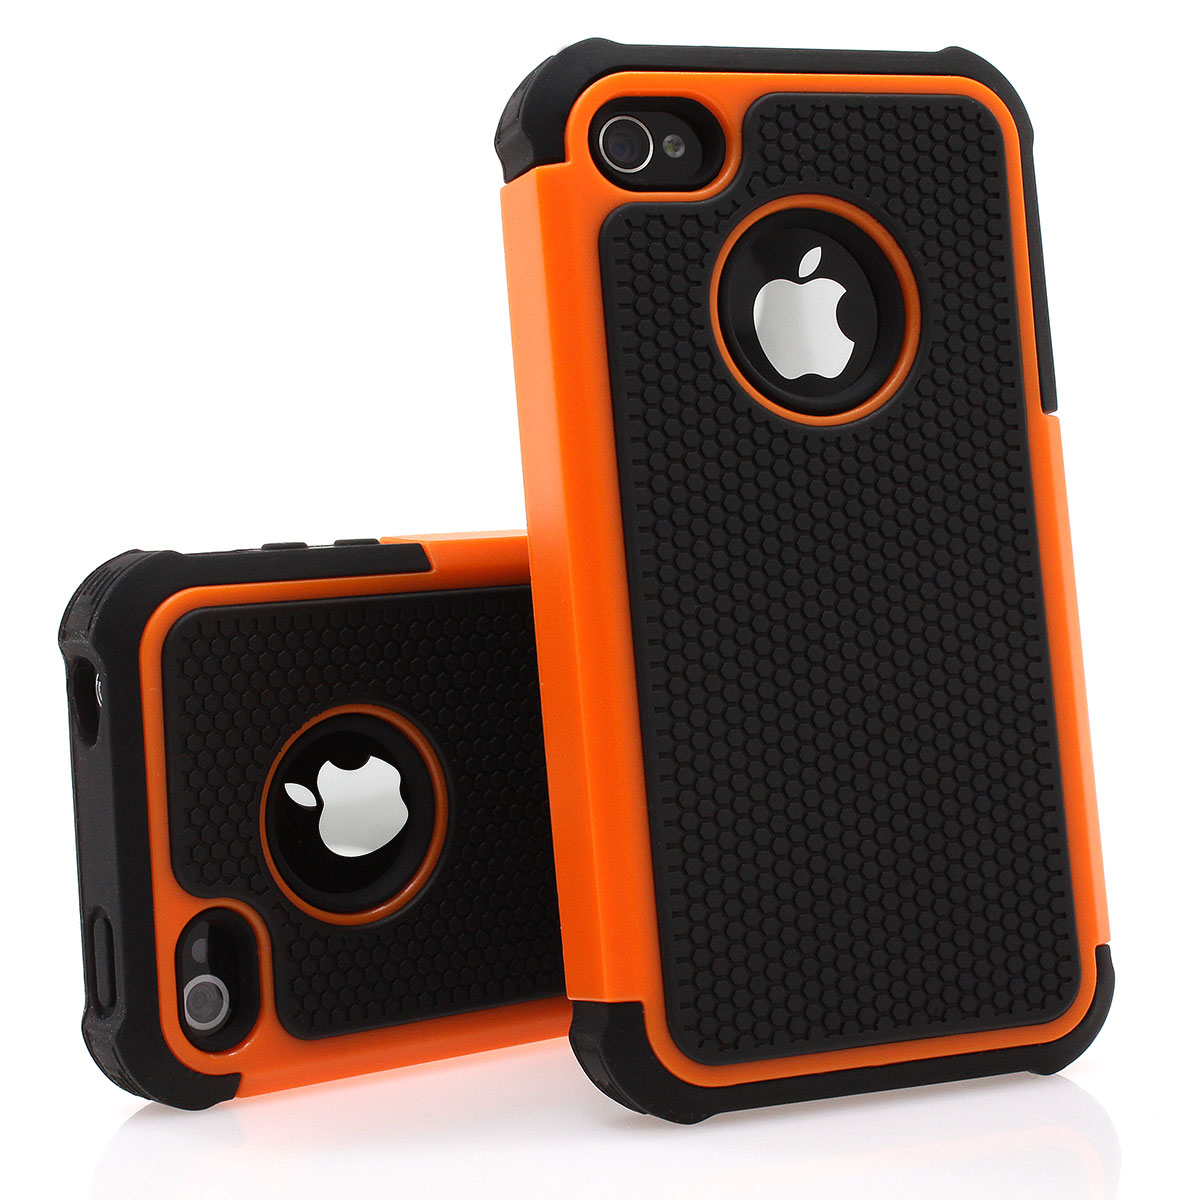 iPhone-4-4S-Bumper-Silikon-Case-Schutz-Huelle-Cover-Bumper-Outdoor-schwarz-orange